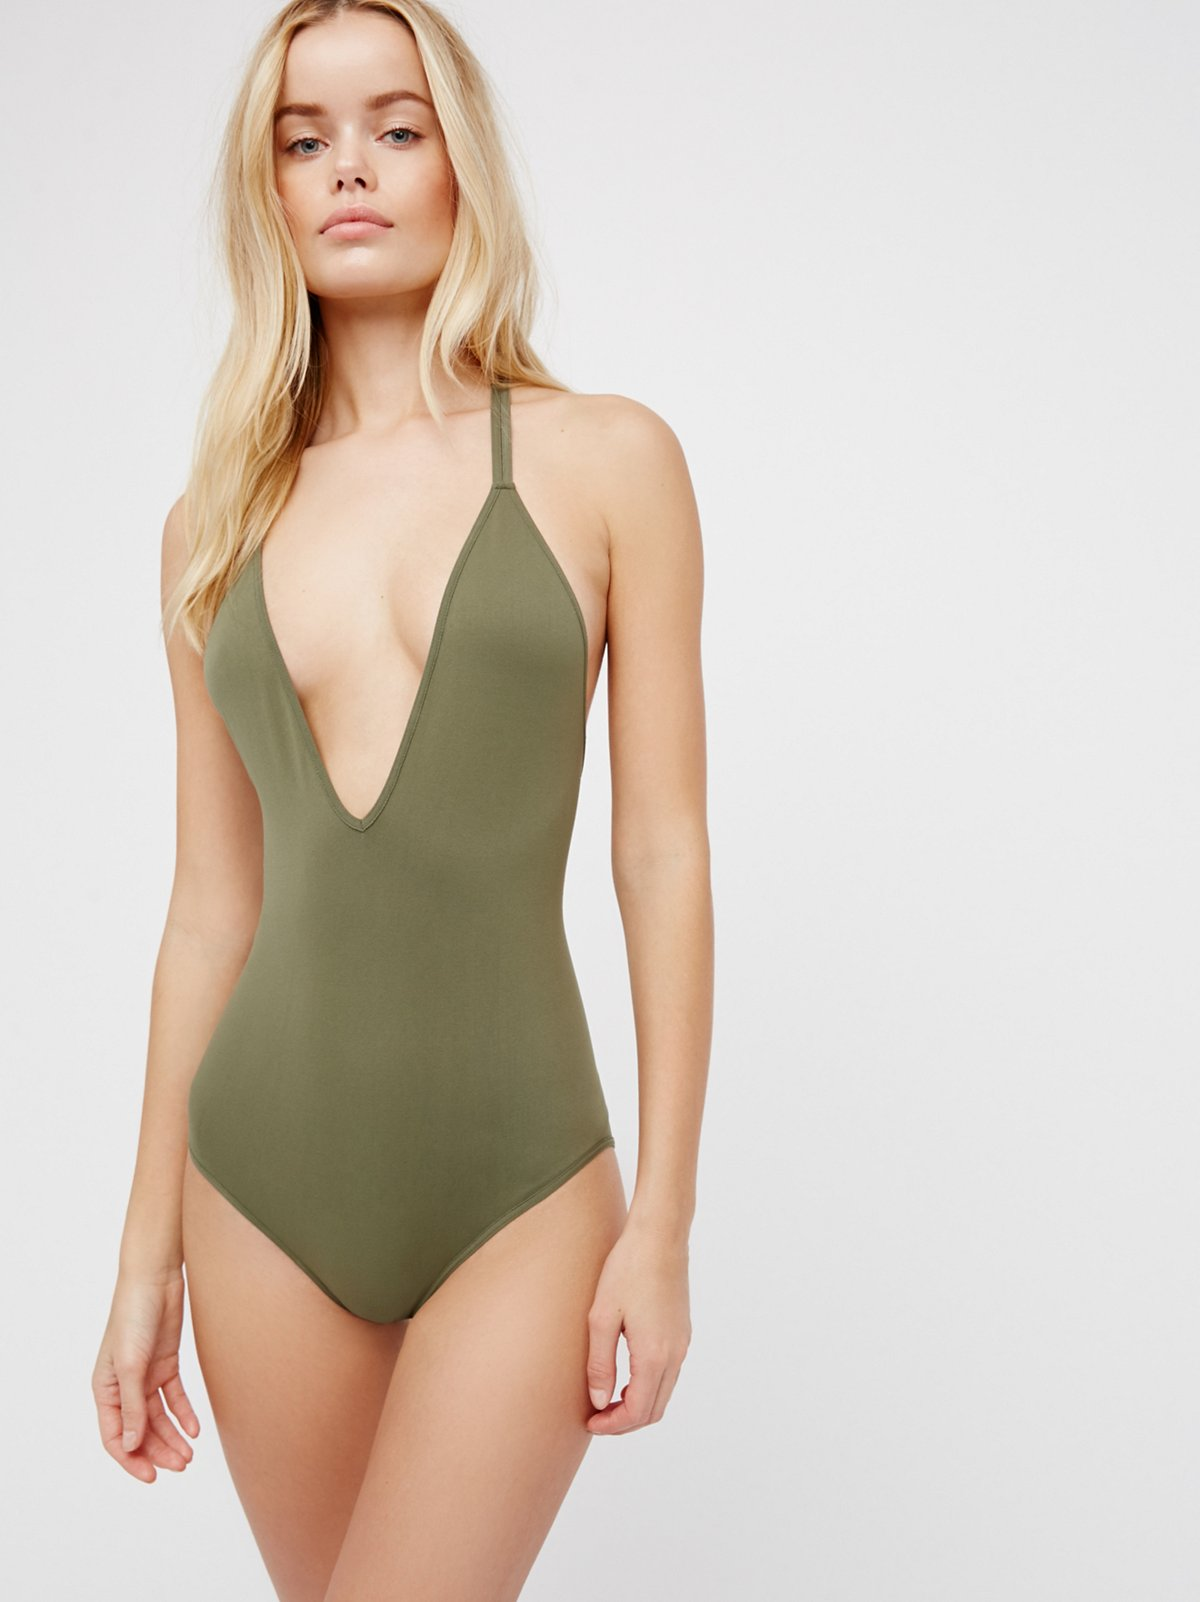 Strappiest Of Them All Bodysuit